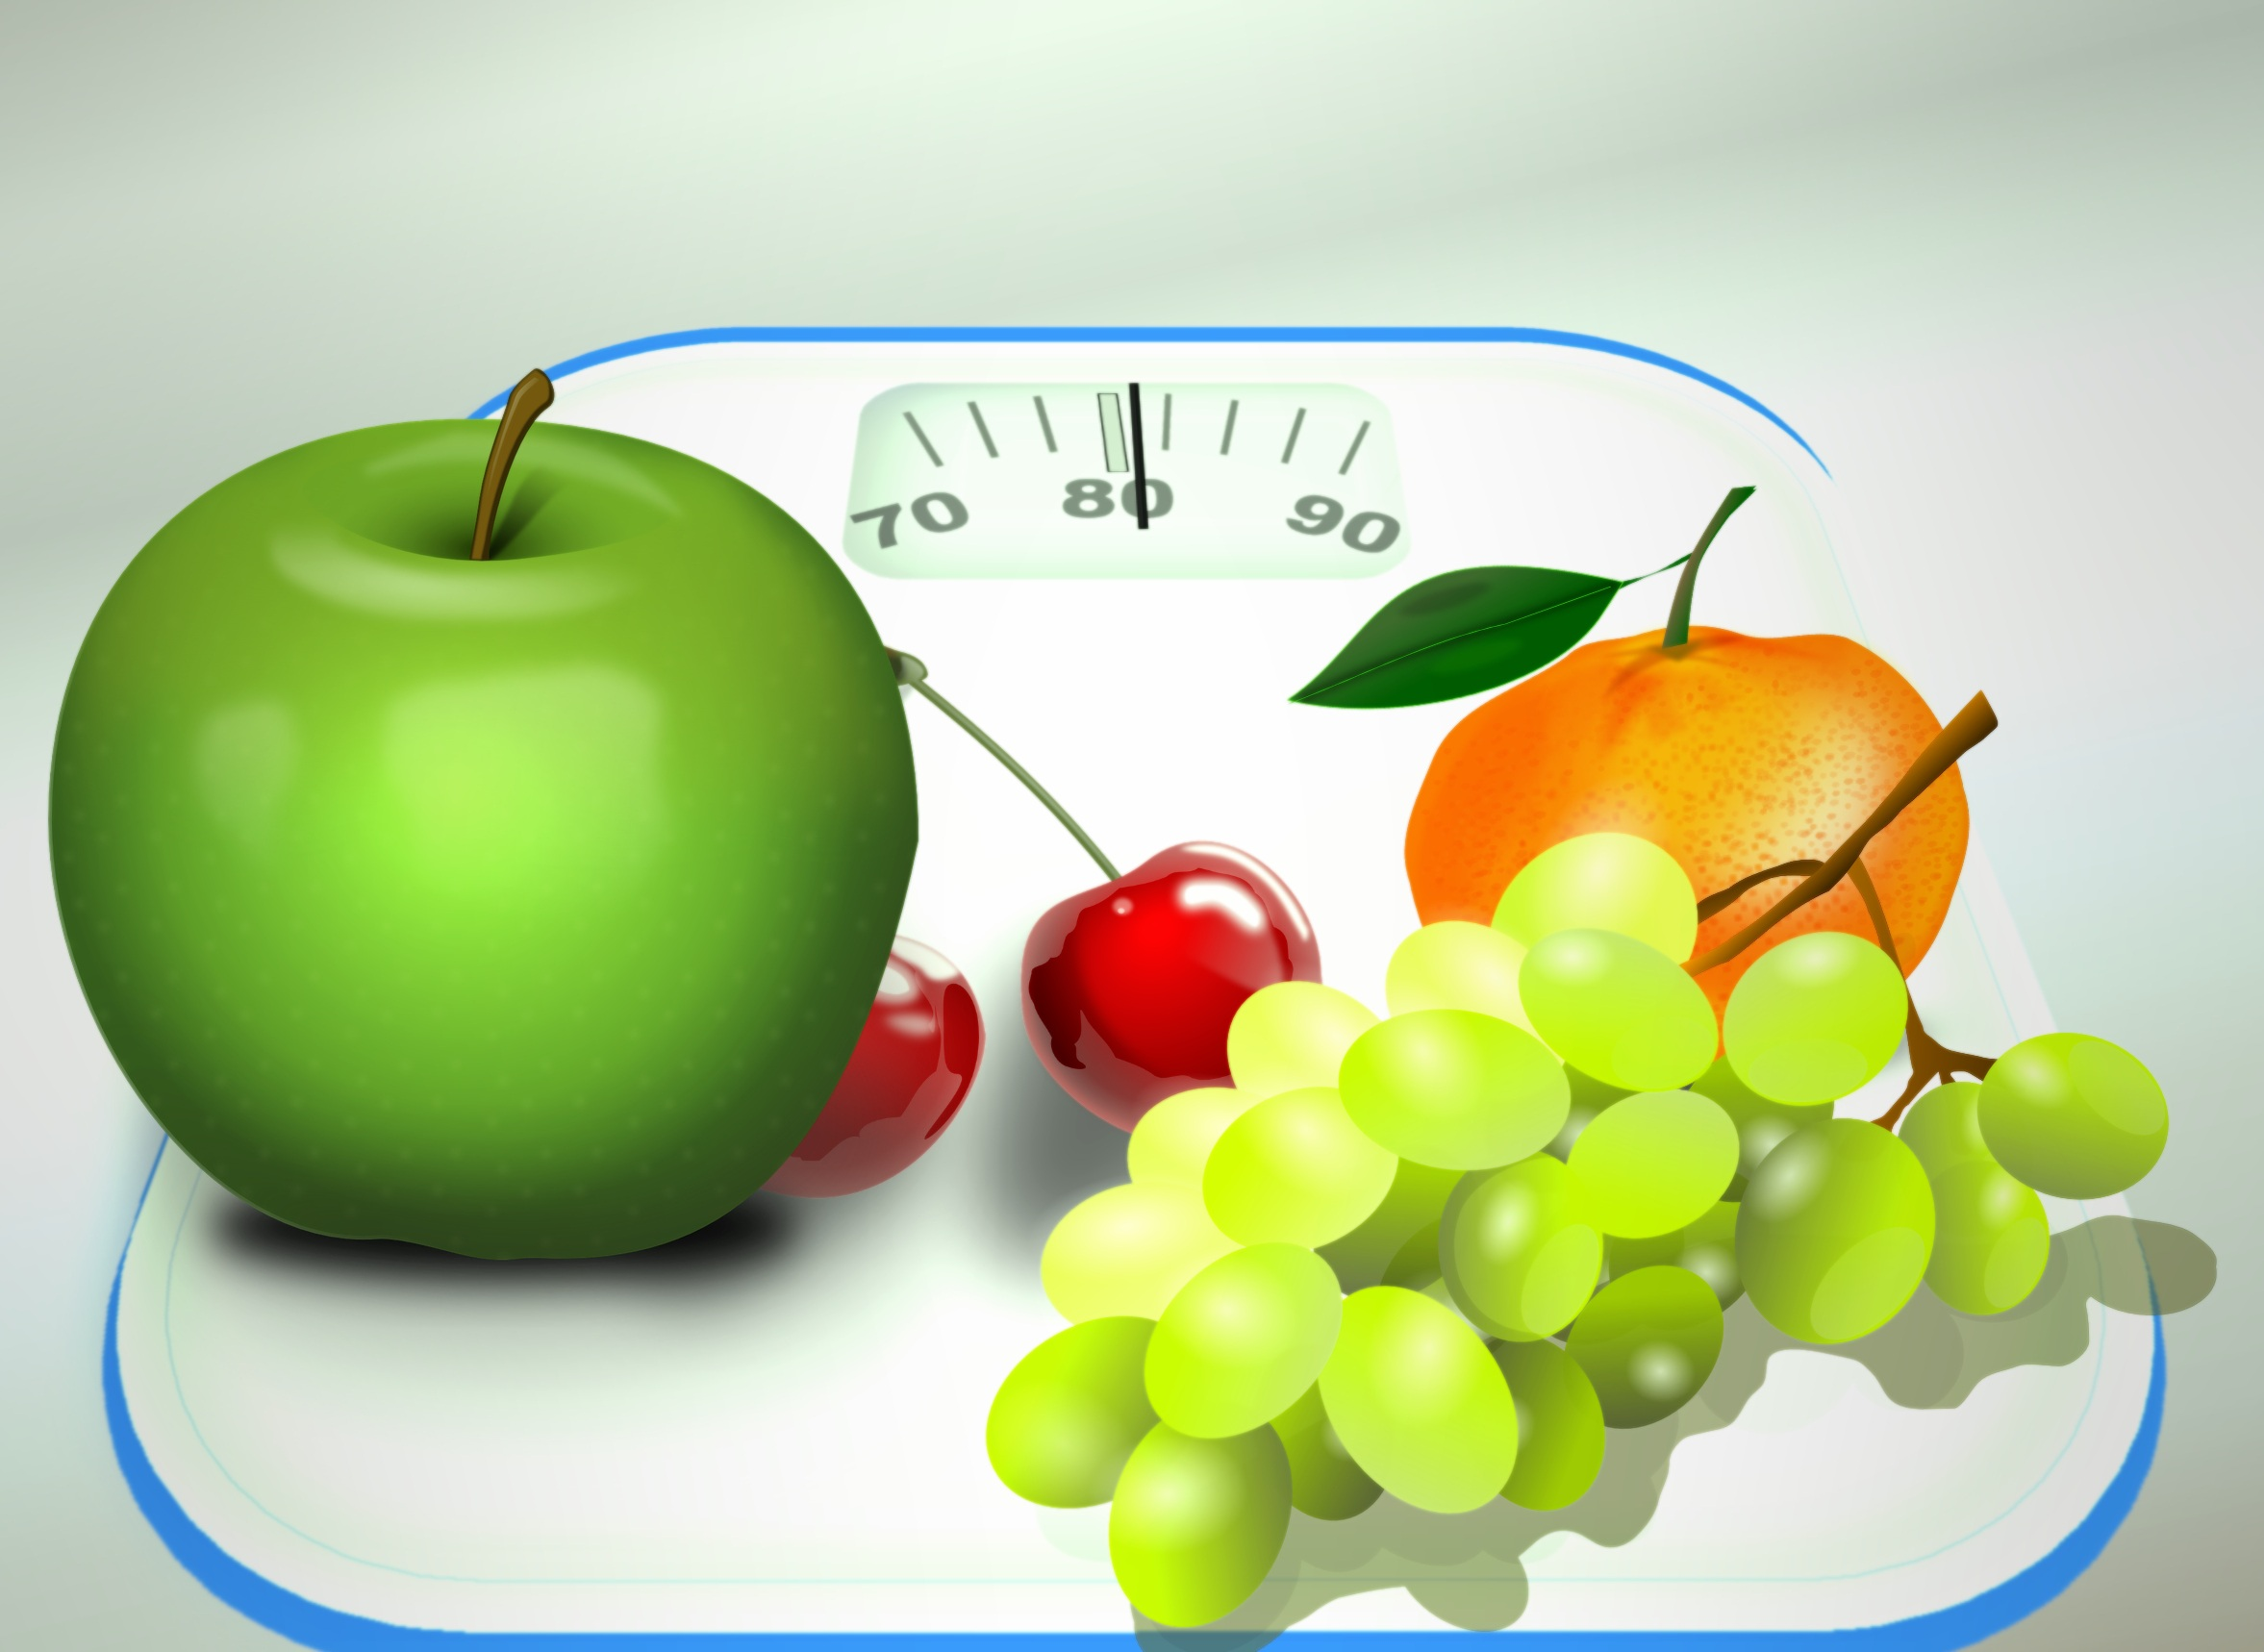 Diet Nutrition Drawing Free Image